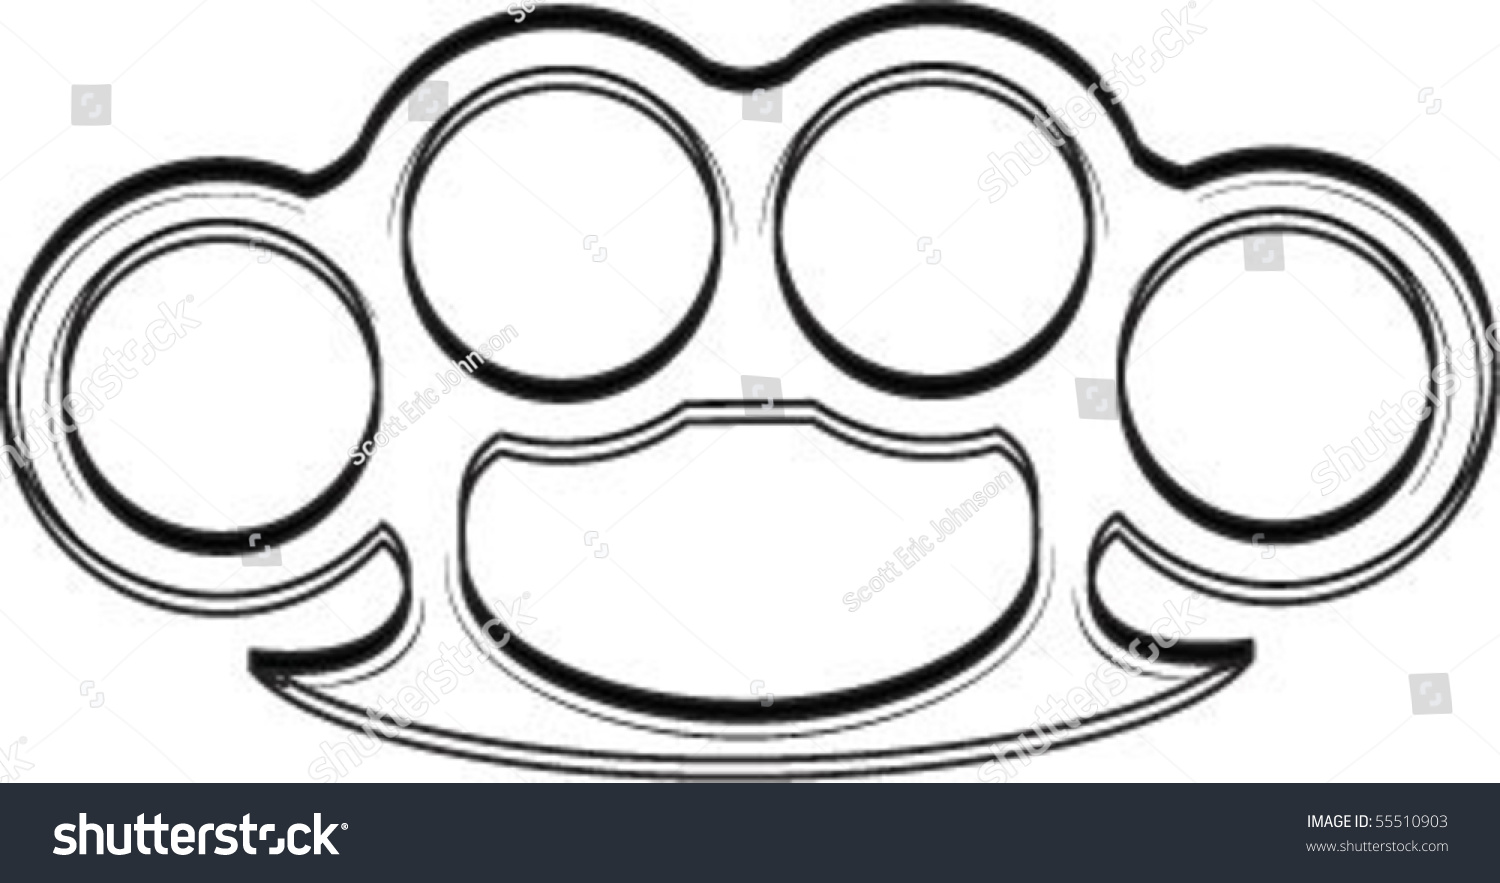 Brass knuckles stock vector 55510903 shutterstock for Brass knuckles template